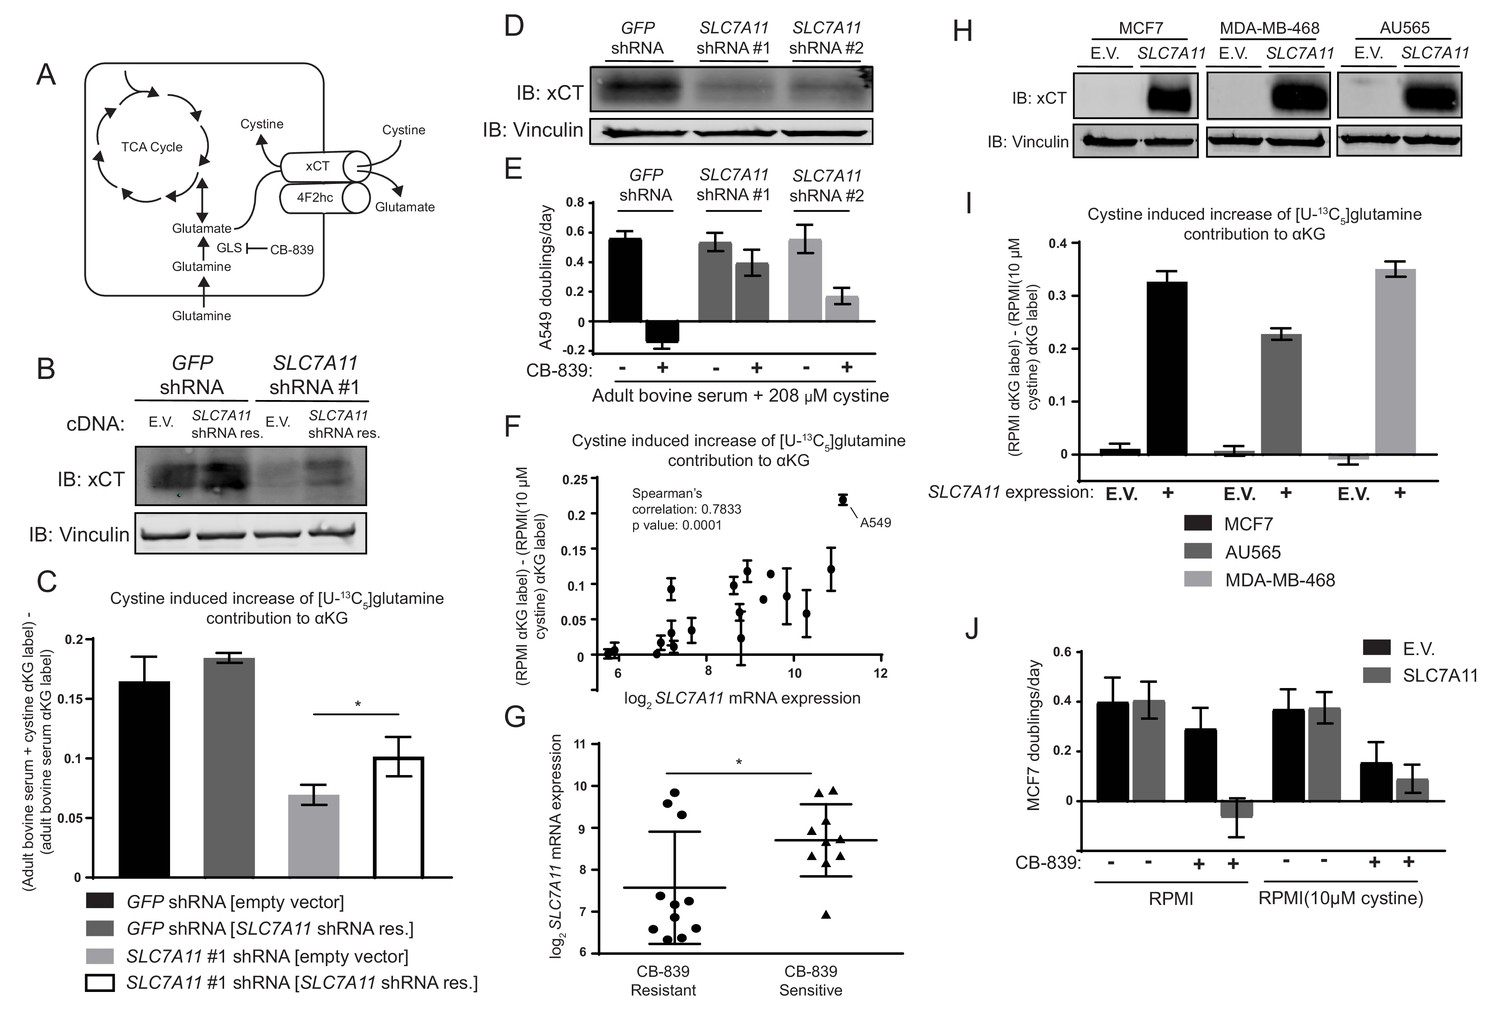 Environmental Cystine Drives Glutamine Anaplerosis And Sensitizes Ledcircuitcalculator Circuit Playground 163 Resistor Power The Glutamate Antiporter Xct Slc7a11 Is Necessary Sufficient For Induced Cb 839 Sensitivity